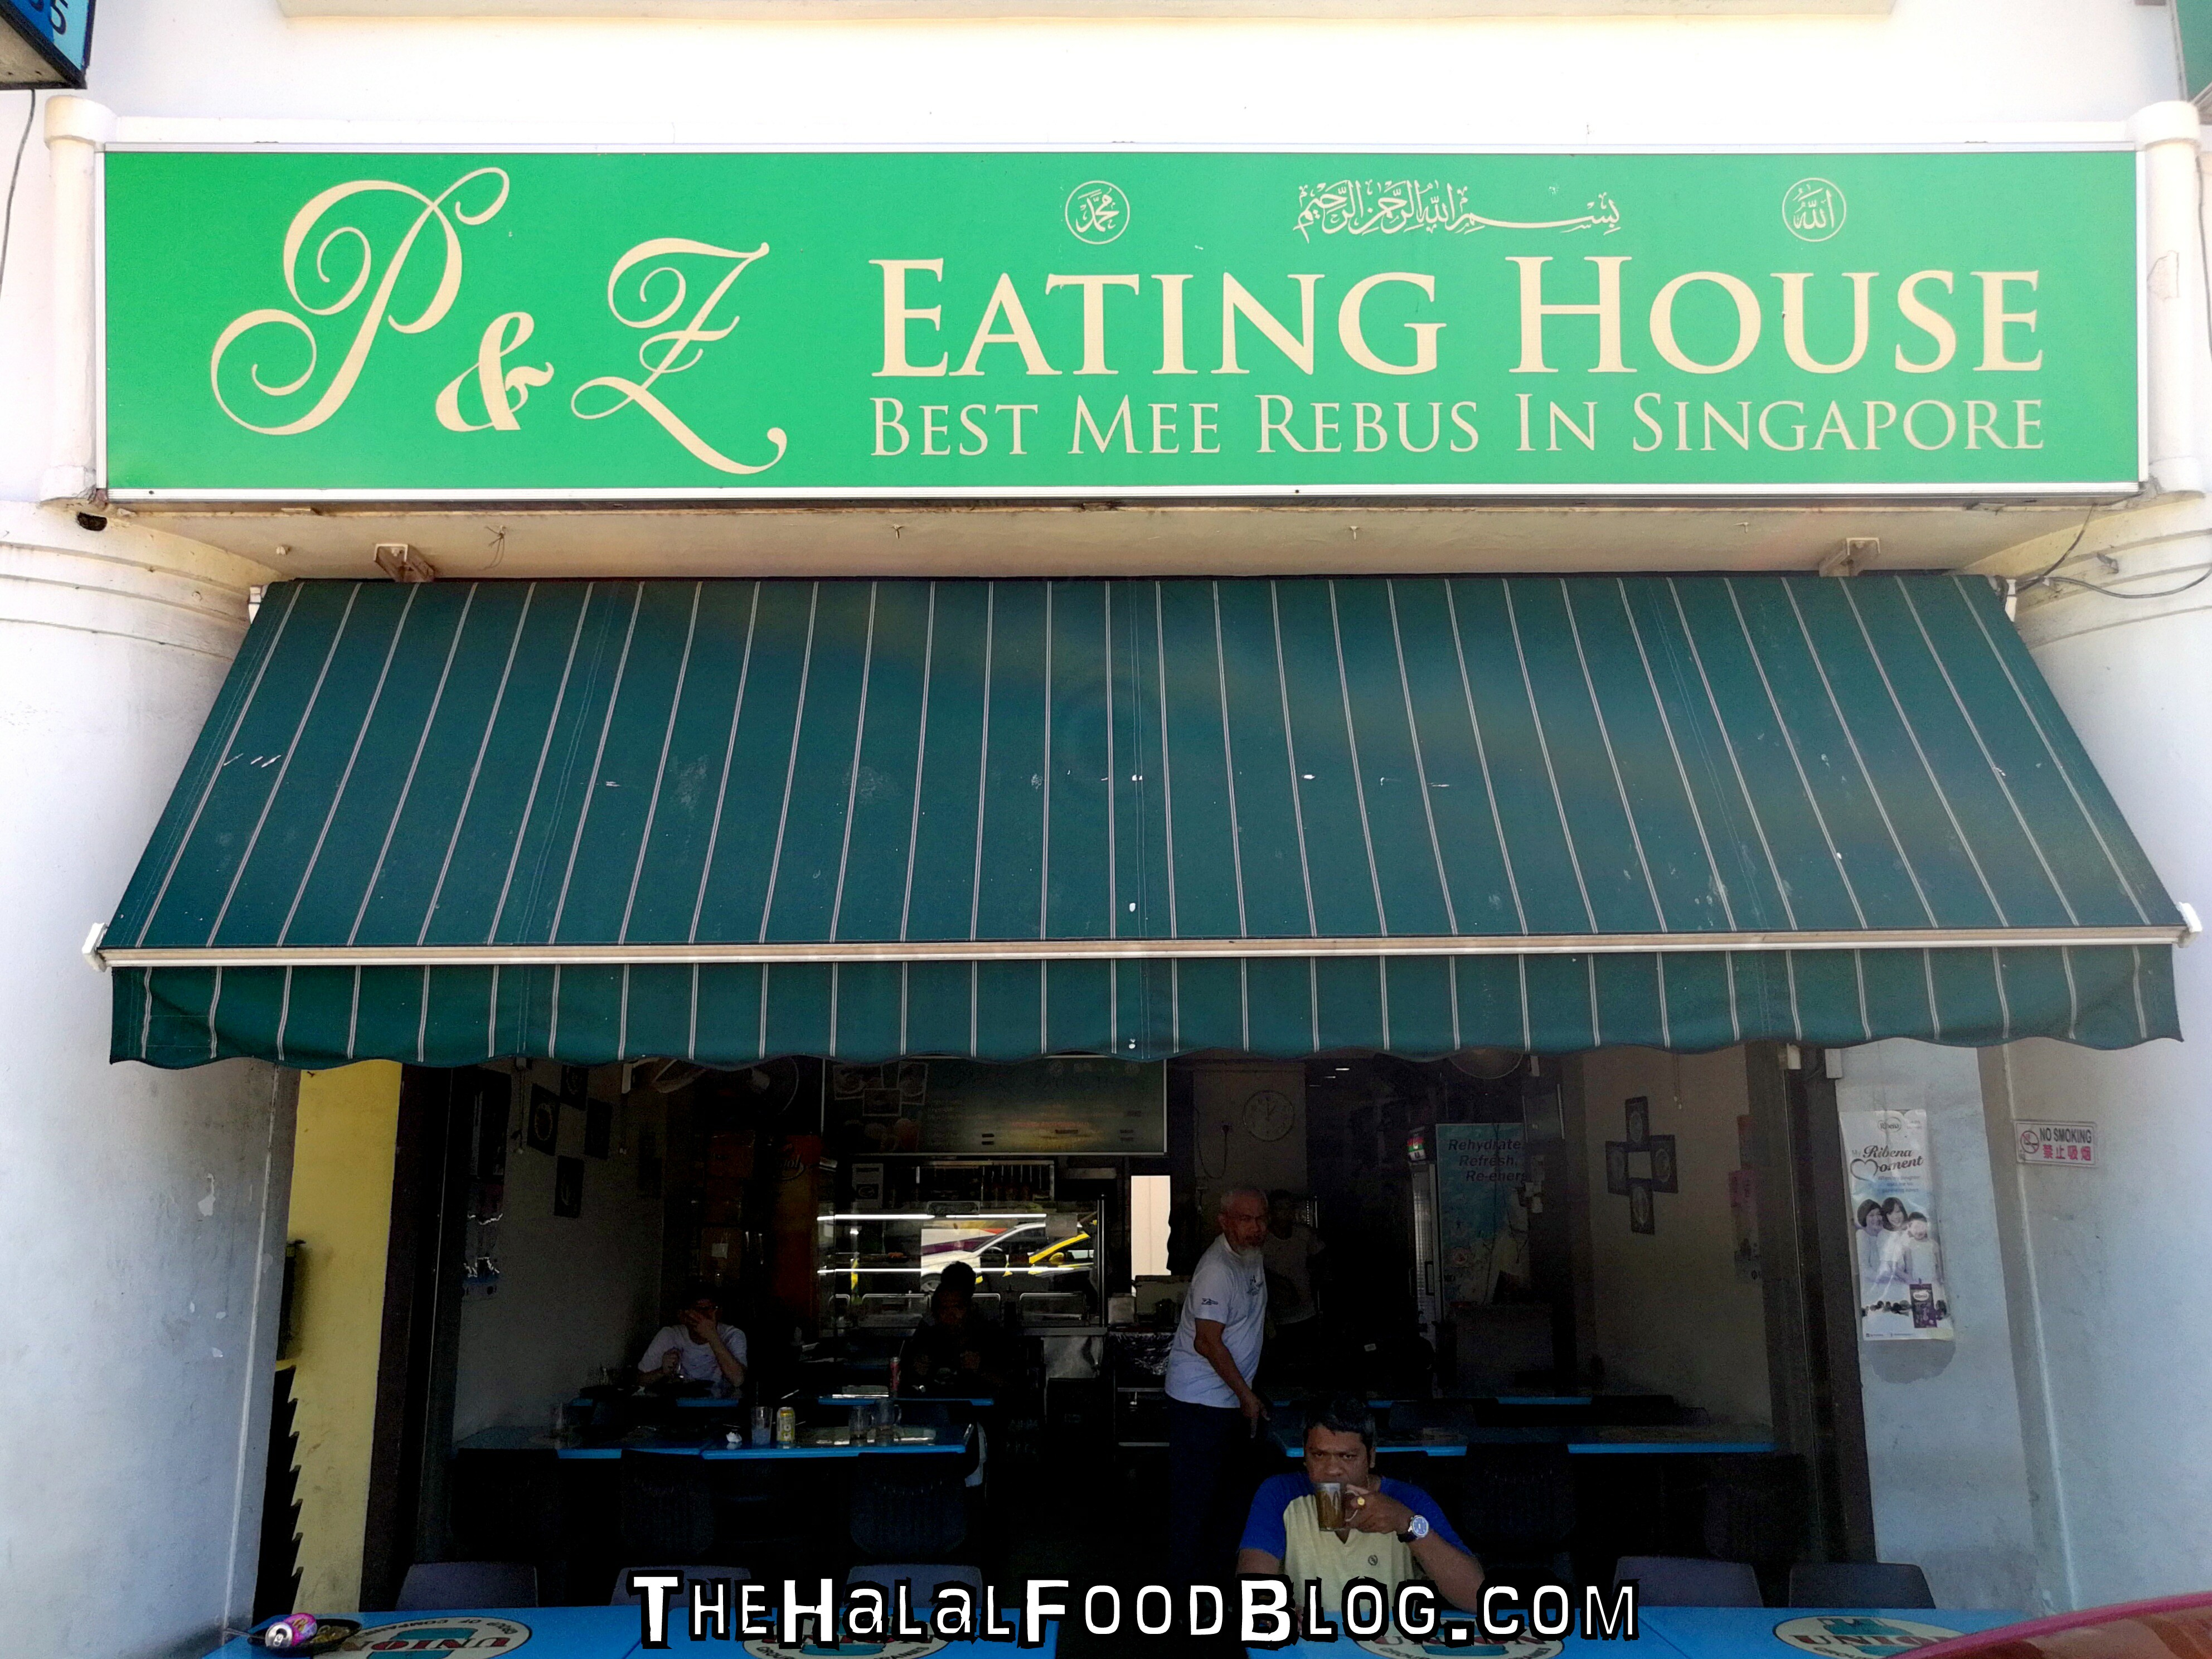 P&Z Eating House - Best Mee Rebus In Singapore - The Halal Food Blog